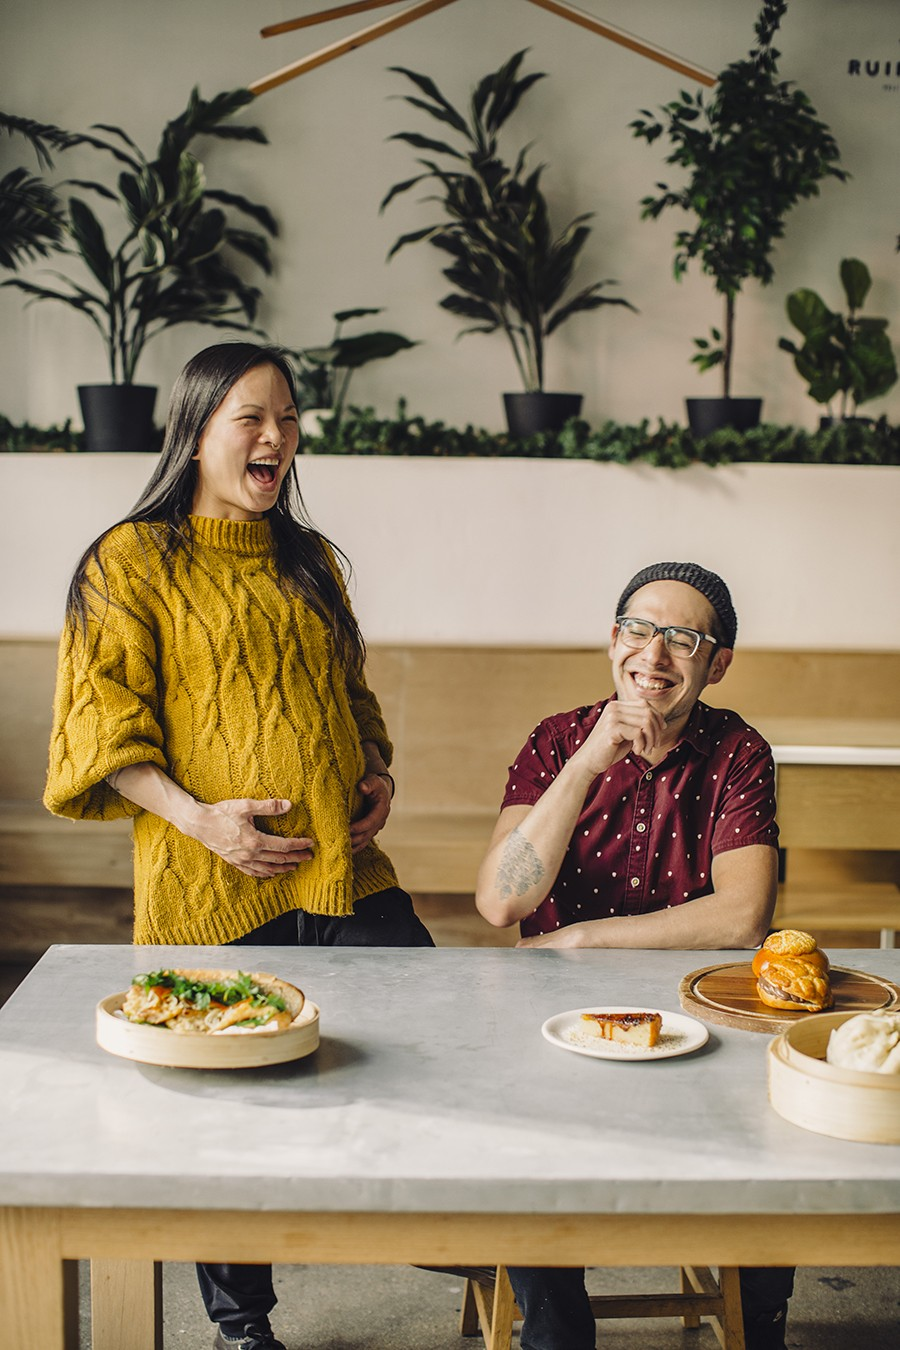 Jeanette Tran-Dean and David Hollinger met in 2014 and bonded over their love for Asian pastries and early exposure to the food of each other's cultures.